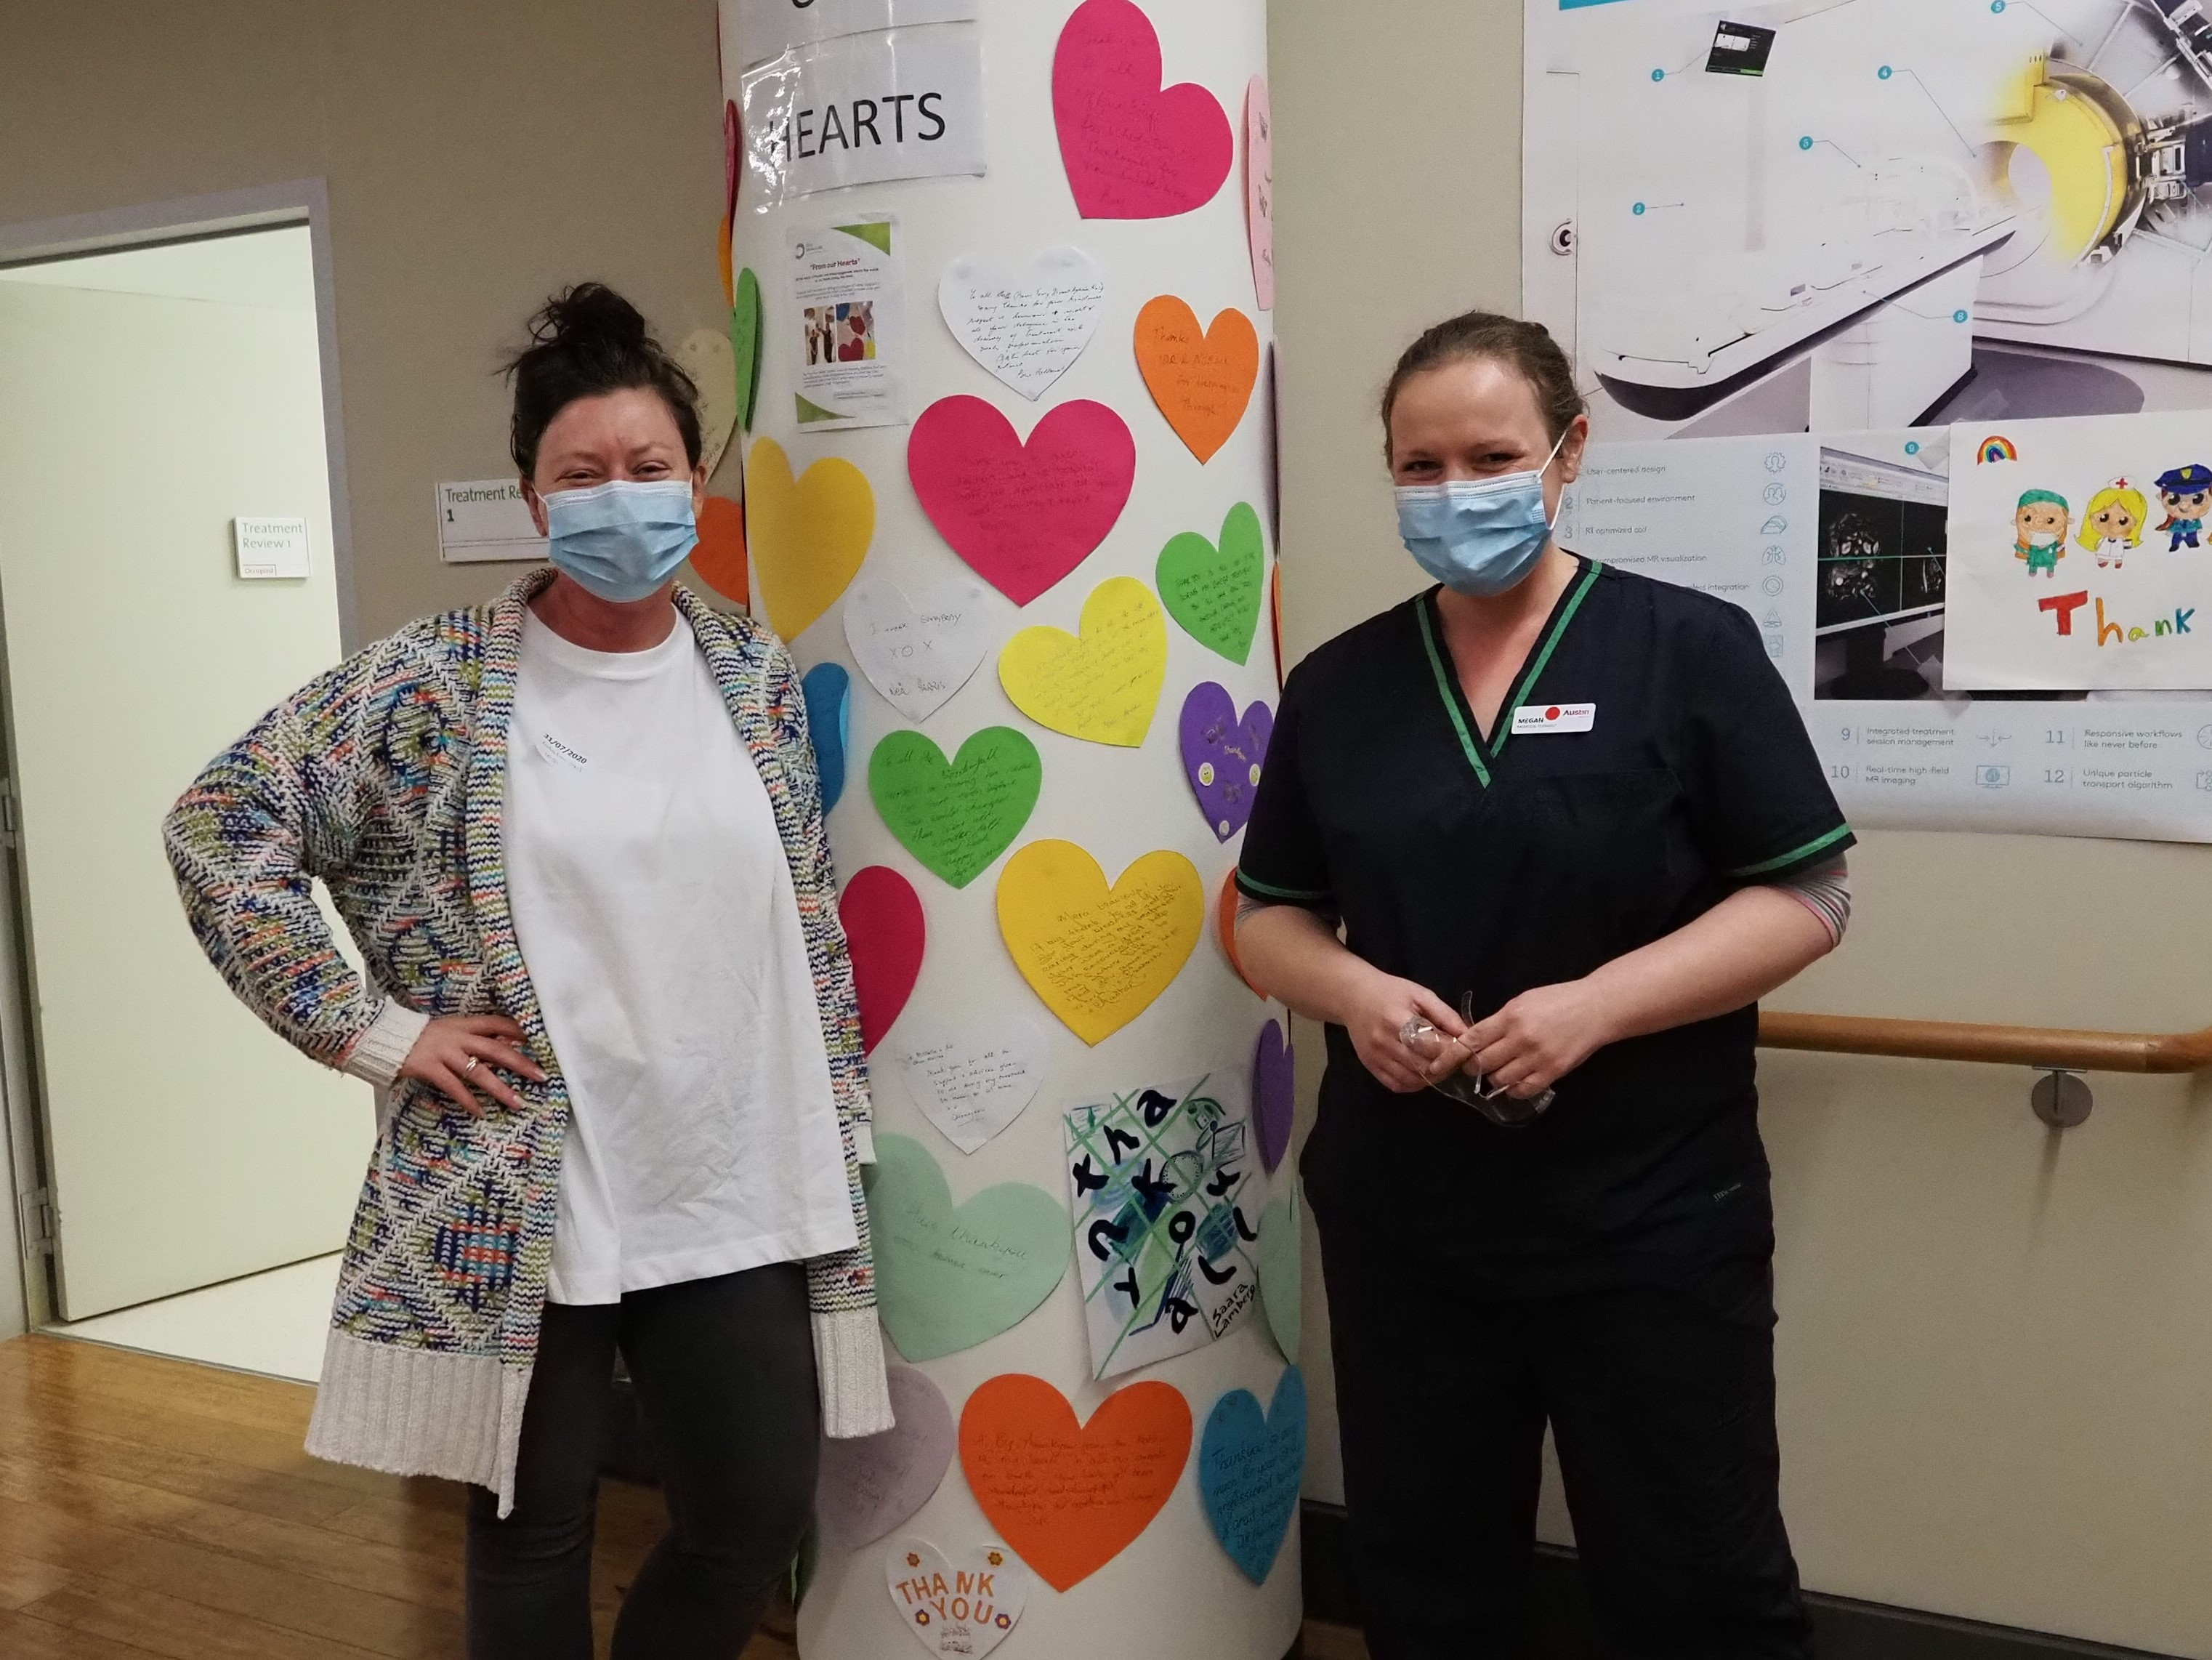 Nardia with Radiation Therapist Megan Hall in front of thank-you messages to hospital staff